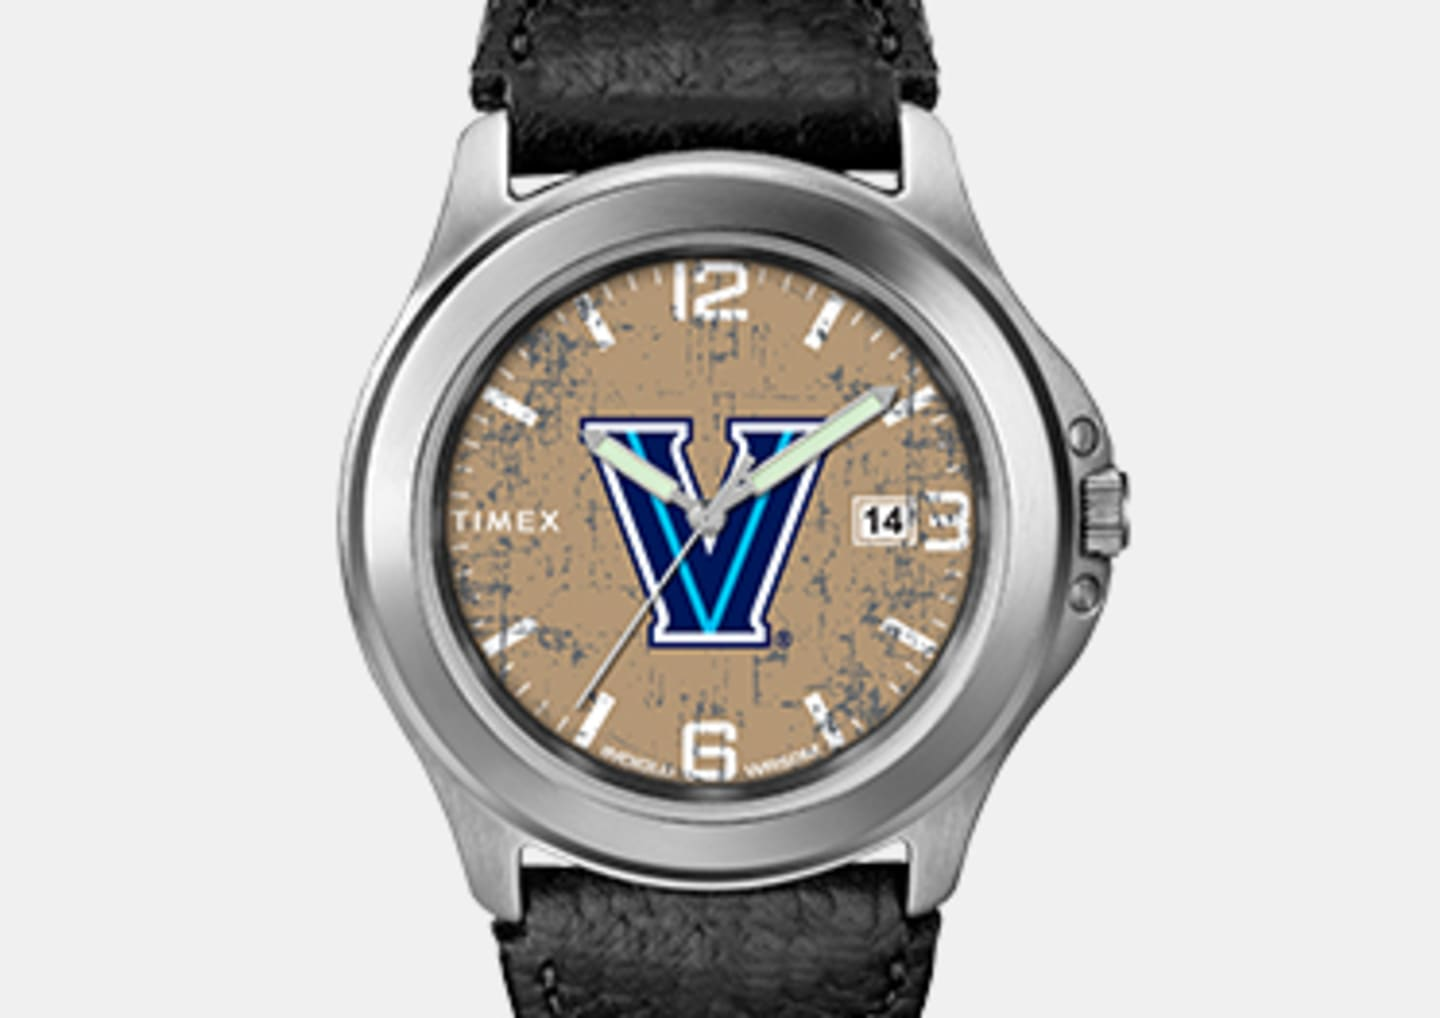 Men's Villanova Silver Watch With Black Strap With Logo In Center